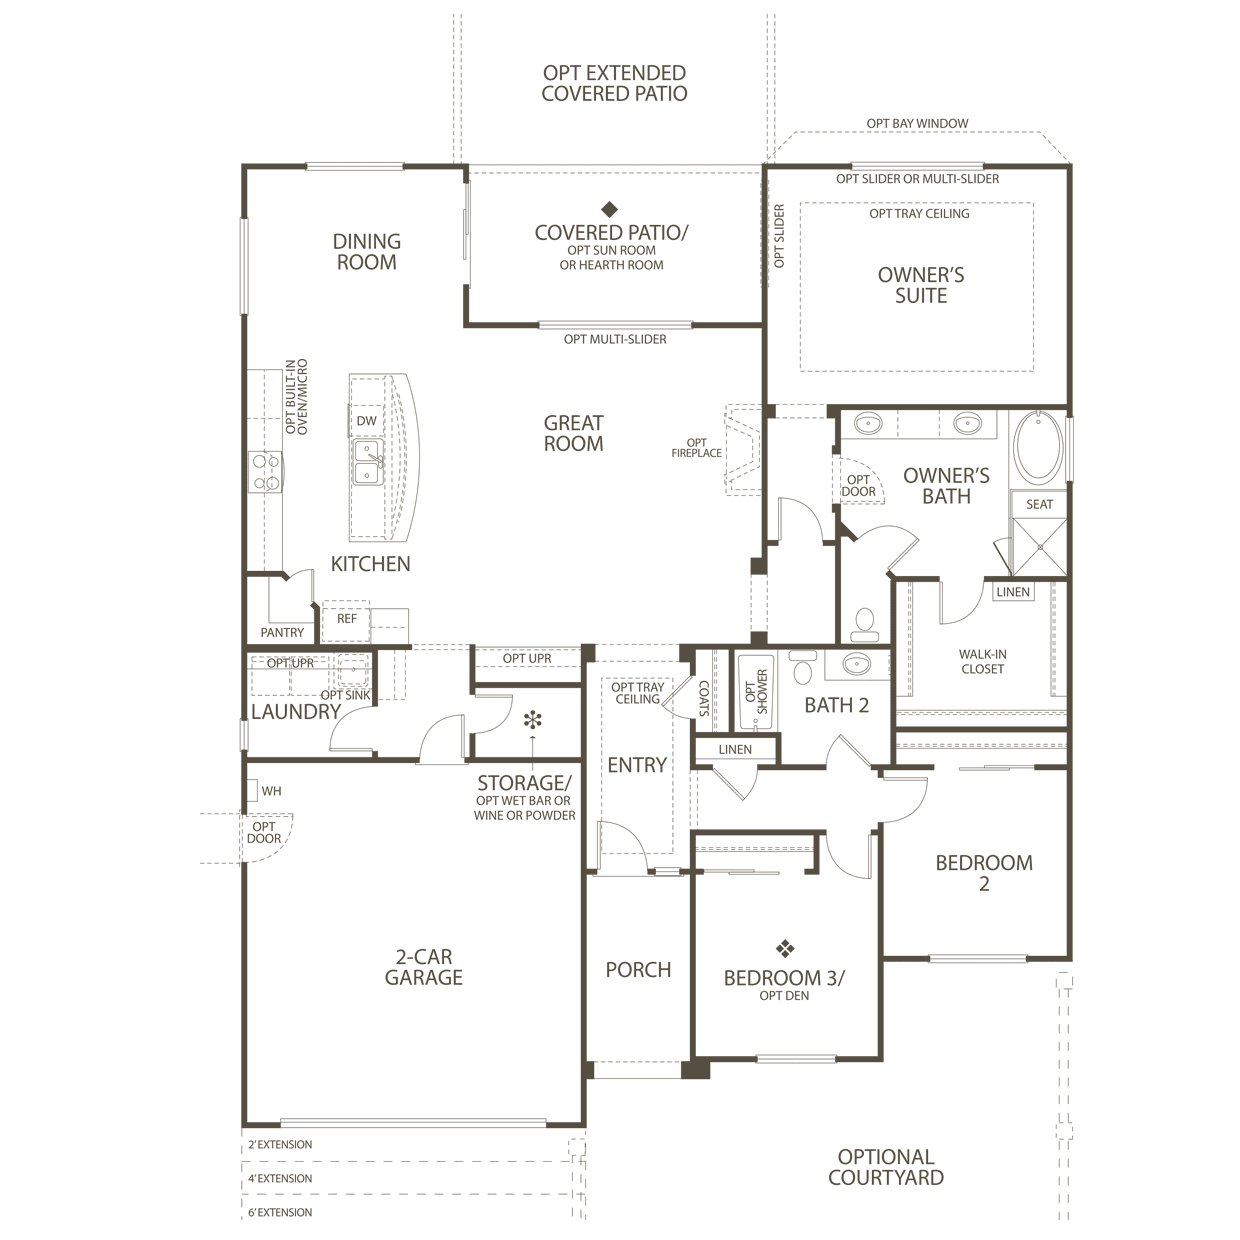 The Haven In Apple Valley Ca At Sun City Del Webb Kitchen Plumbing Diagram Shematic First Floor